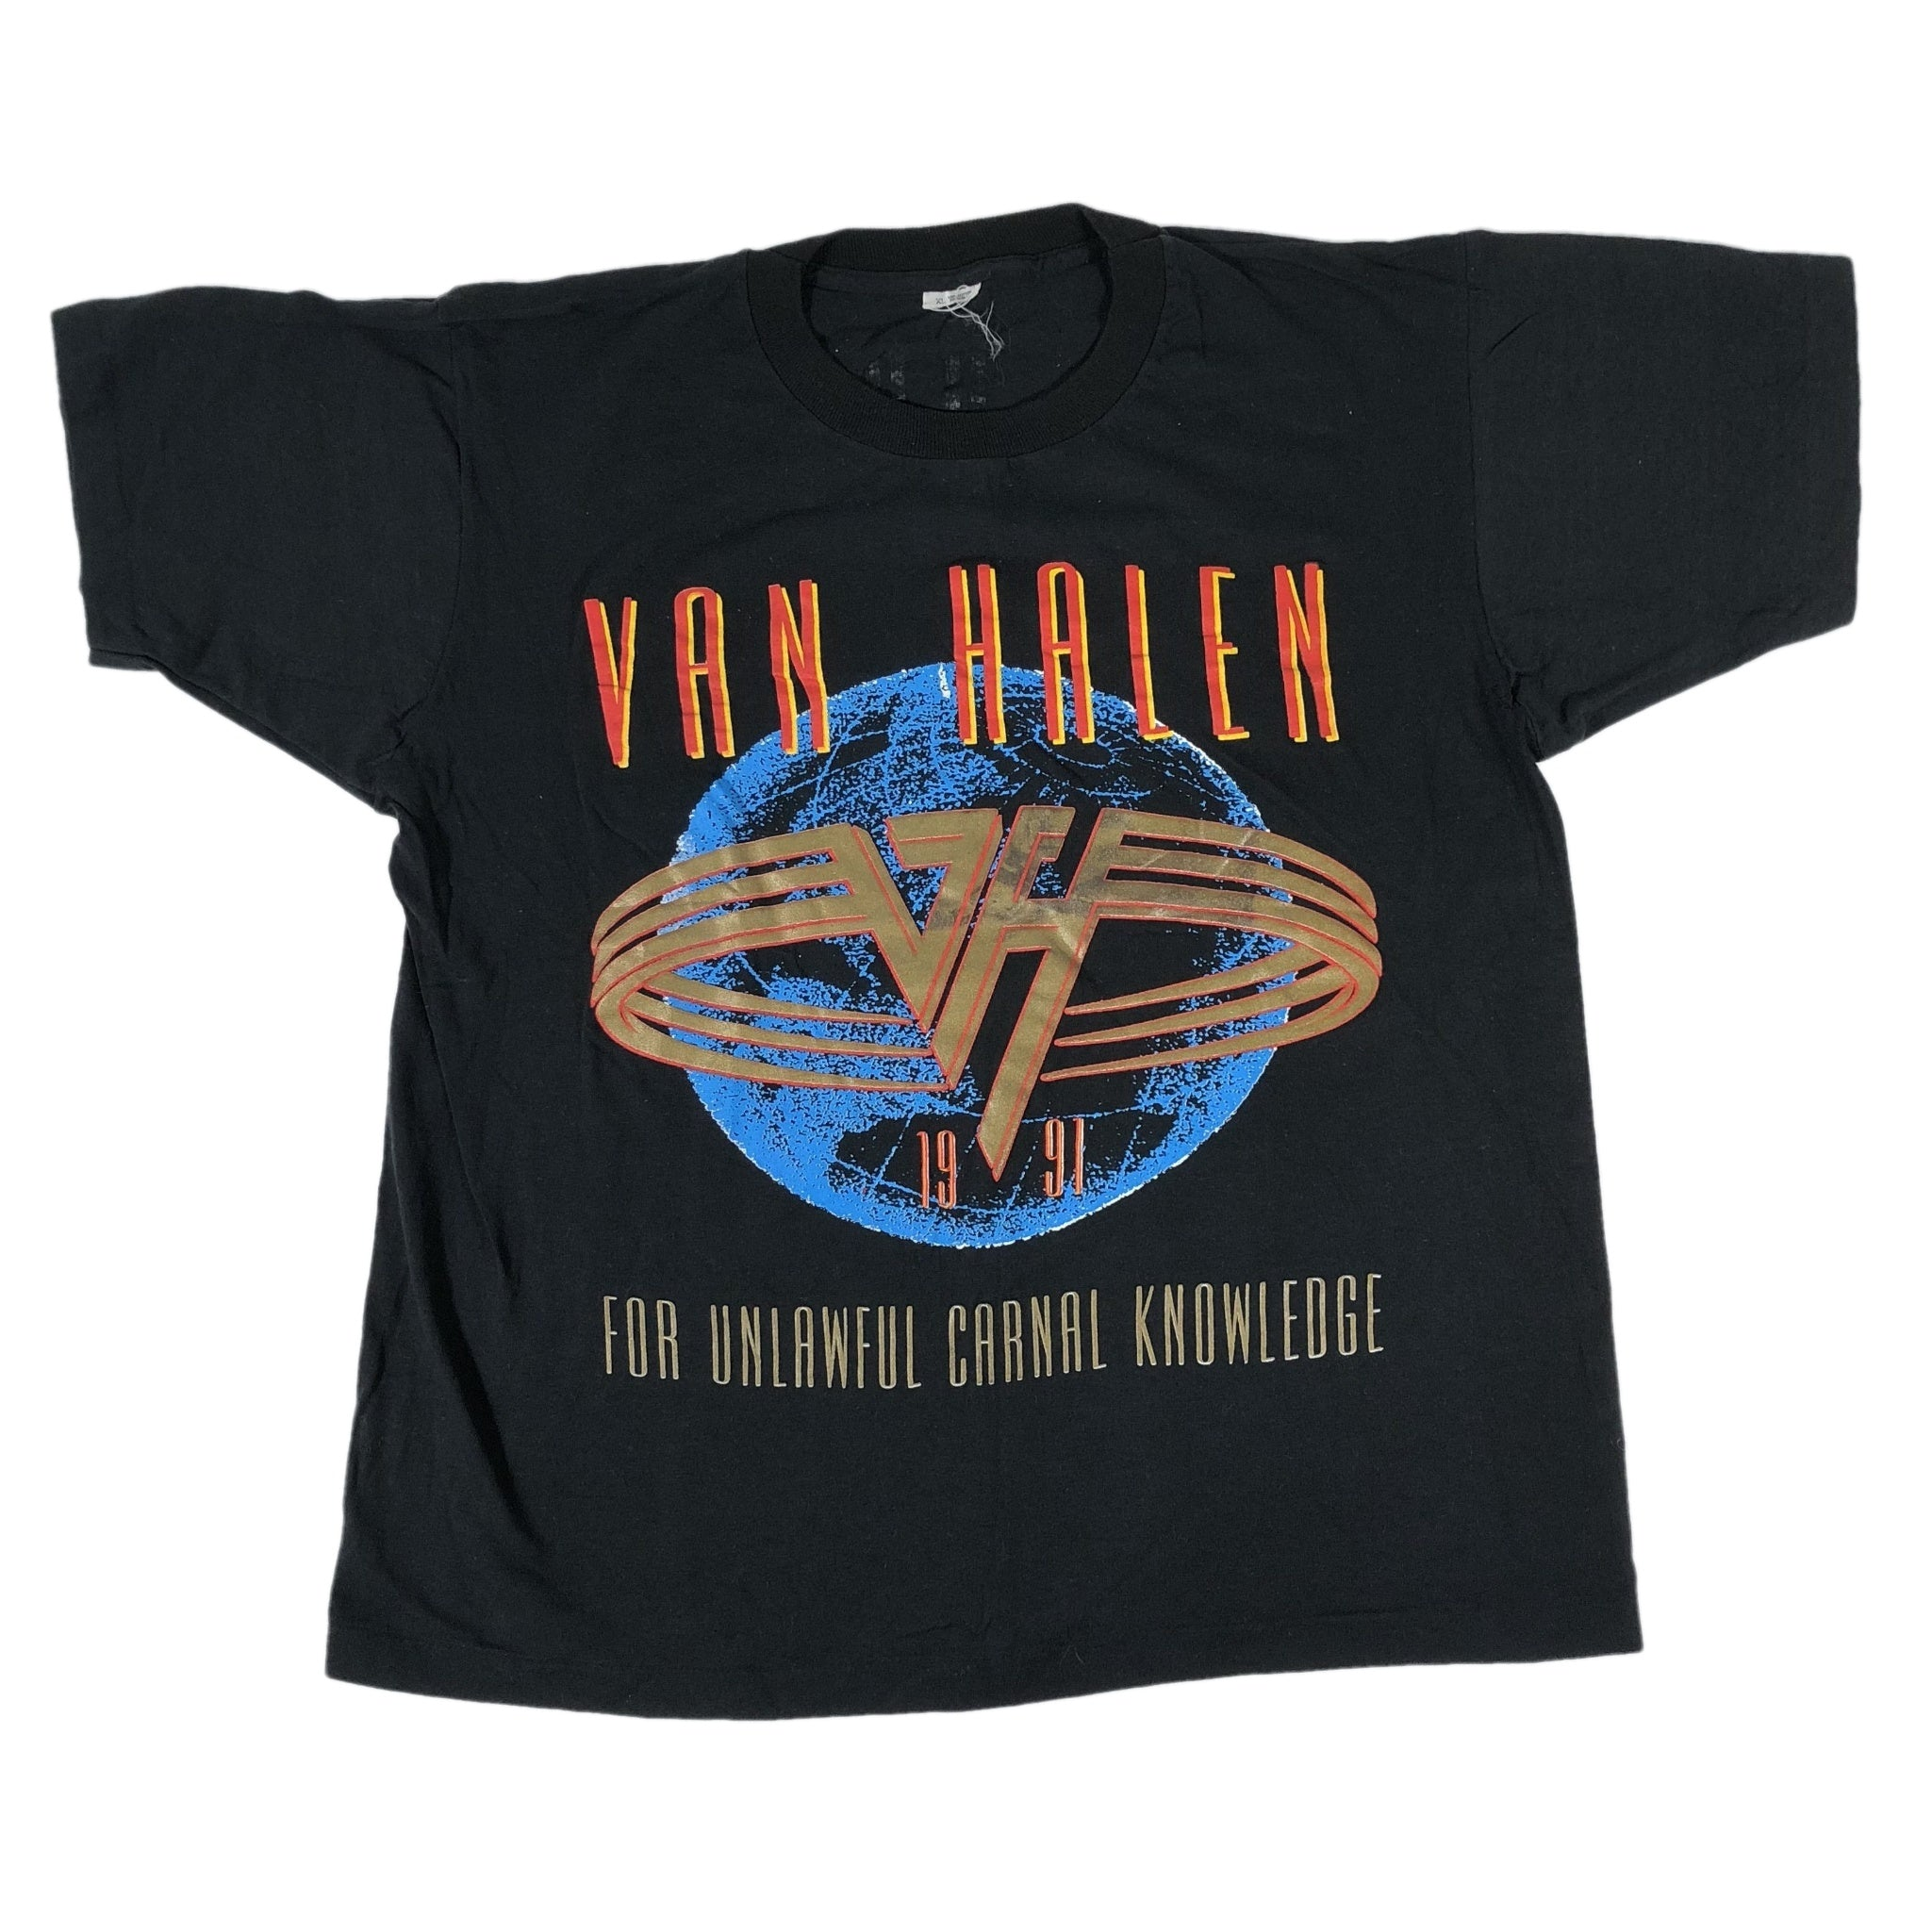 "Vintage Van Halen ""For Unlawful Carnal Knowlege"" ""Death Star"" T-Shirt"